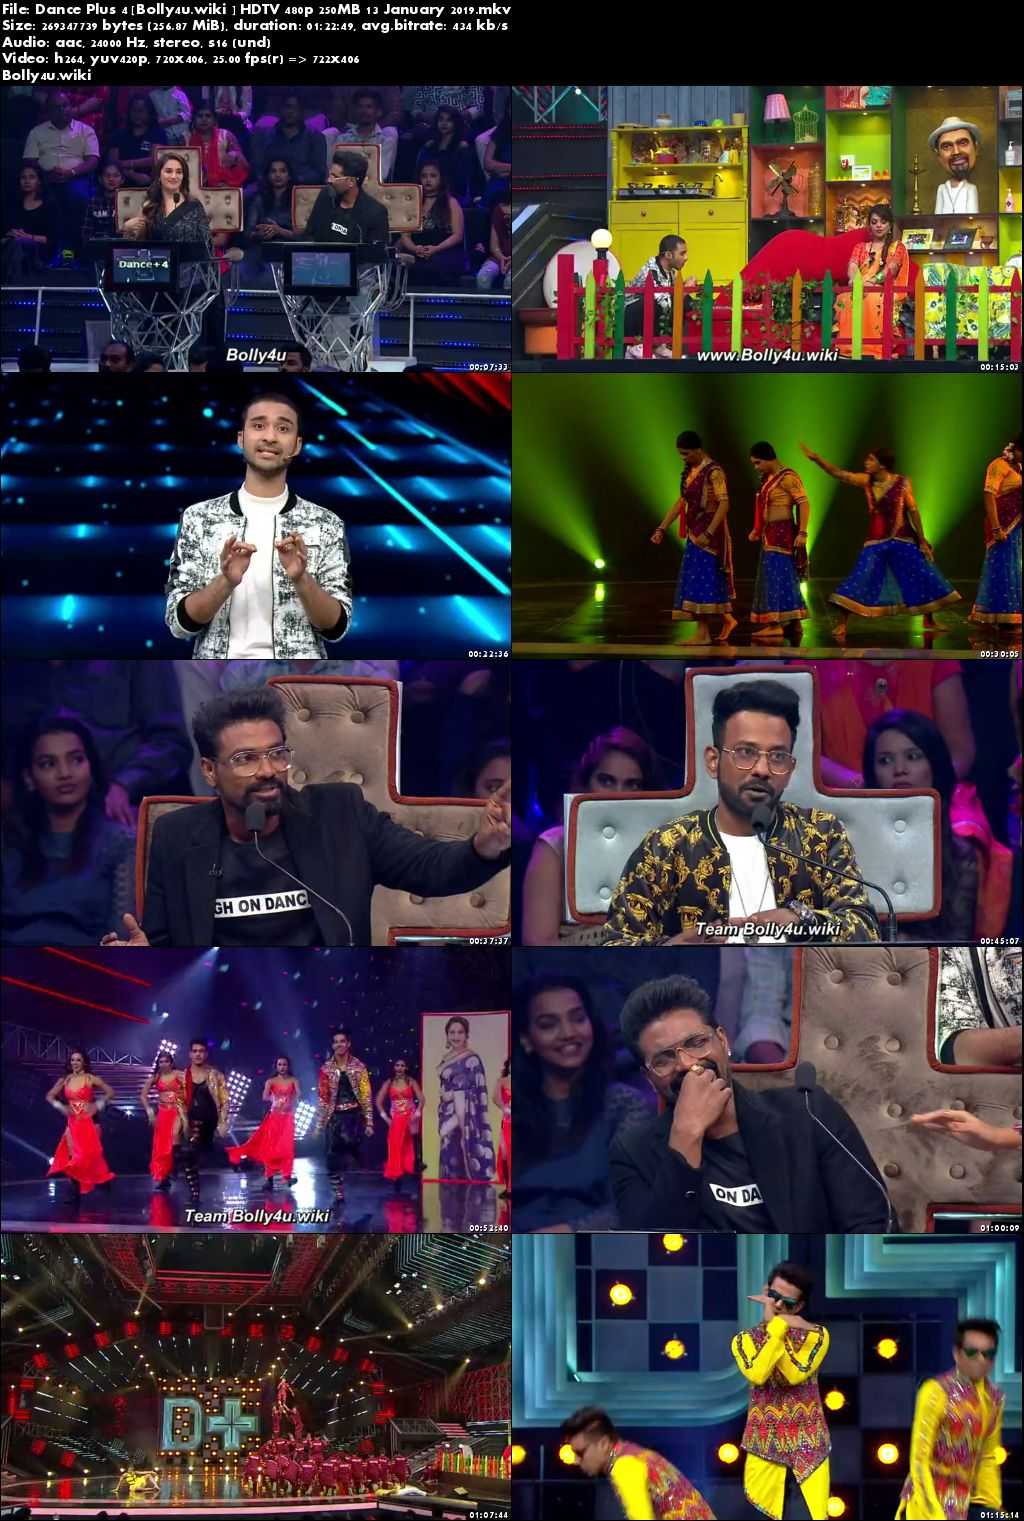 Dance Plus Season 4 HDTV 480p 250MB 13 January 2019 Download